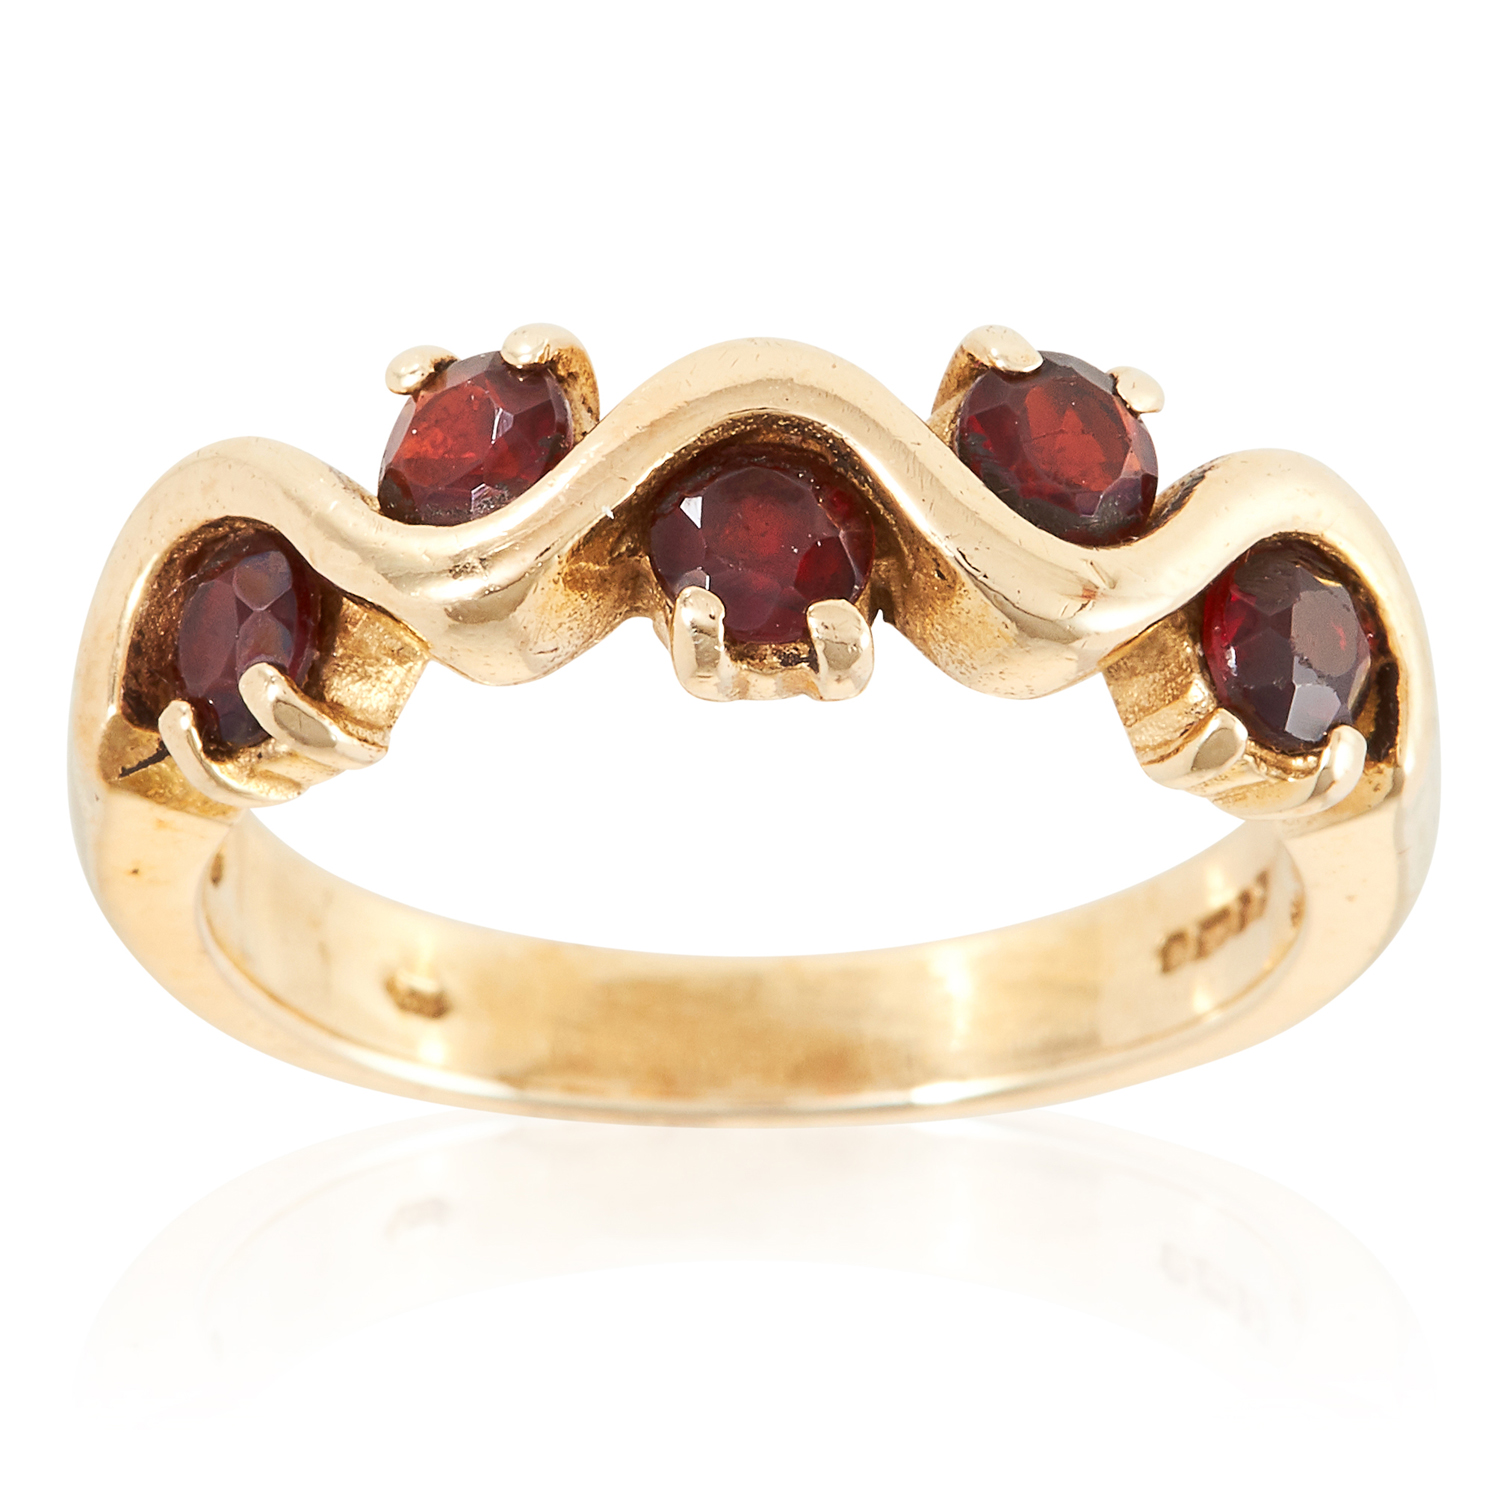 A GARNET DRESS RING in yellow gold, set with five round cut garnets in undulating form, British